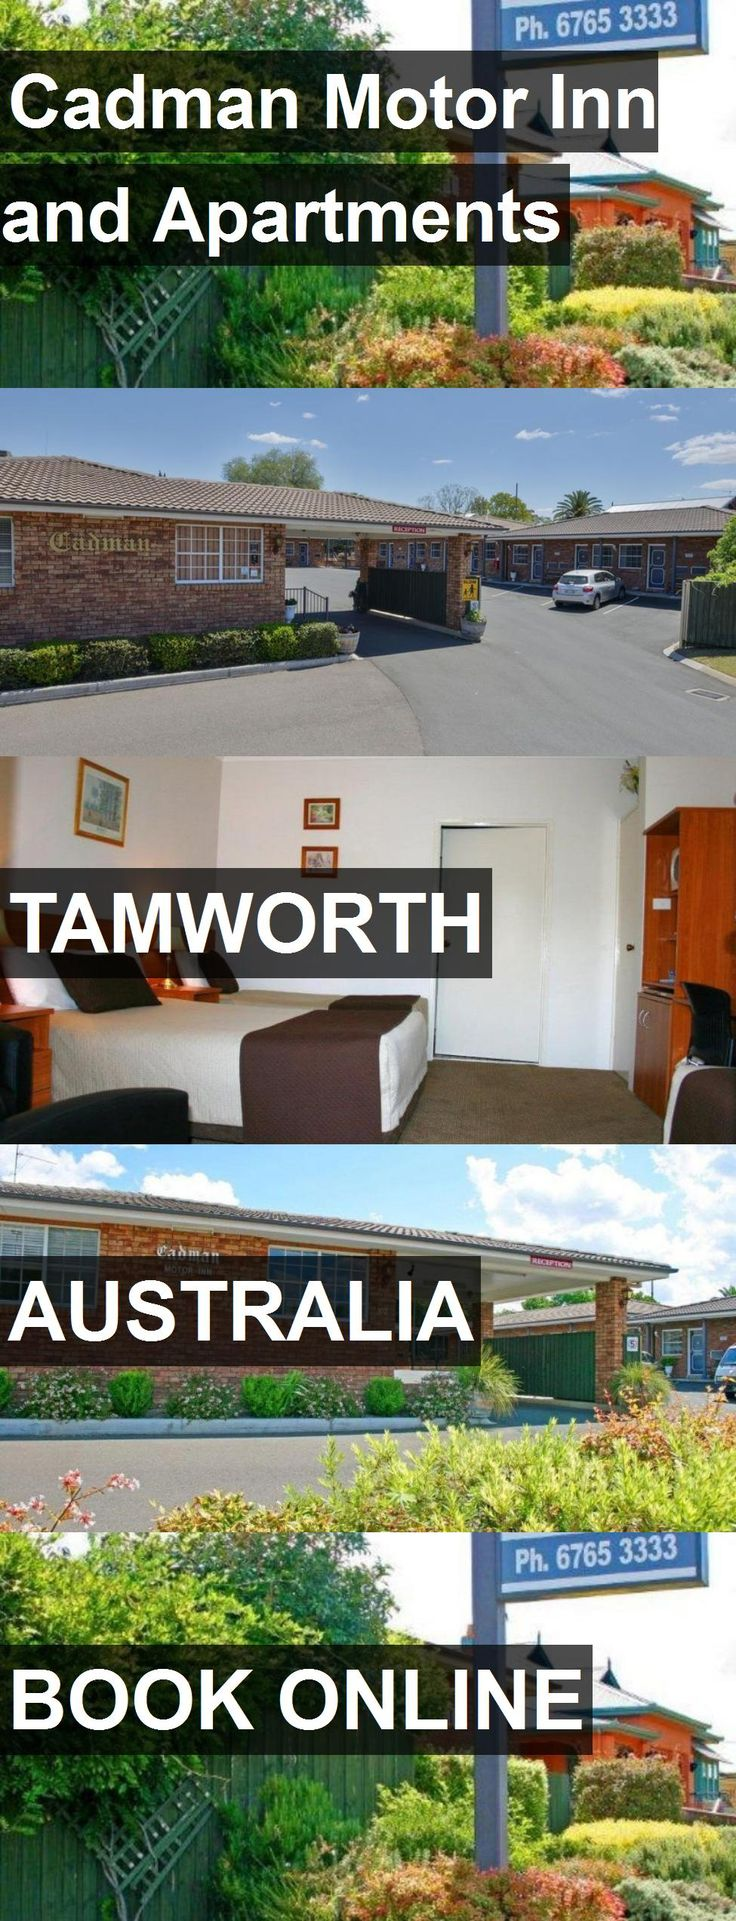 Cadman Motor Inn and Apartments in Tamworth, Australia. For more information, photos, reviews and best prices please follow the link. #Australia #Tamworth #travel #vacation #apartment